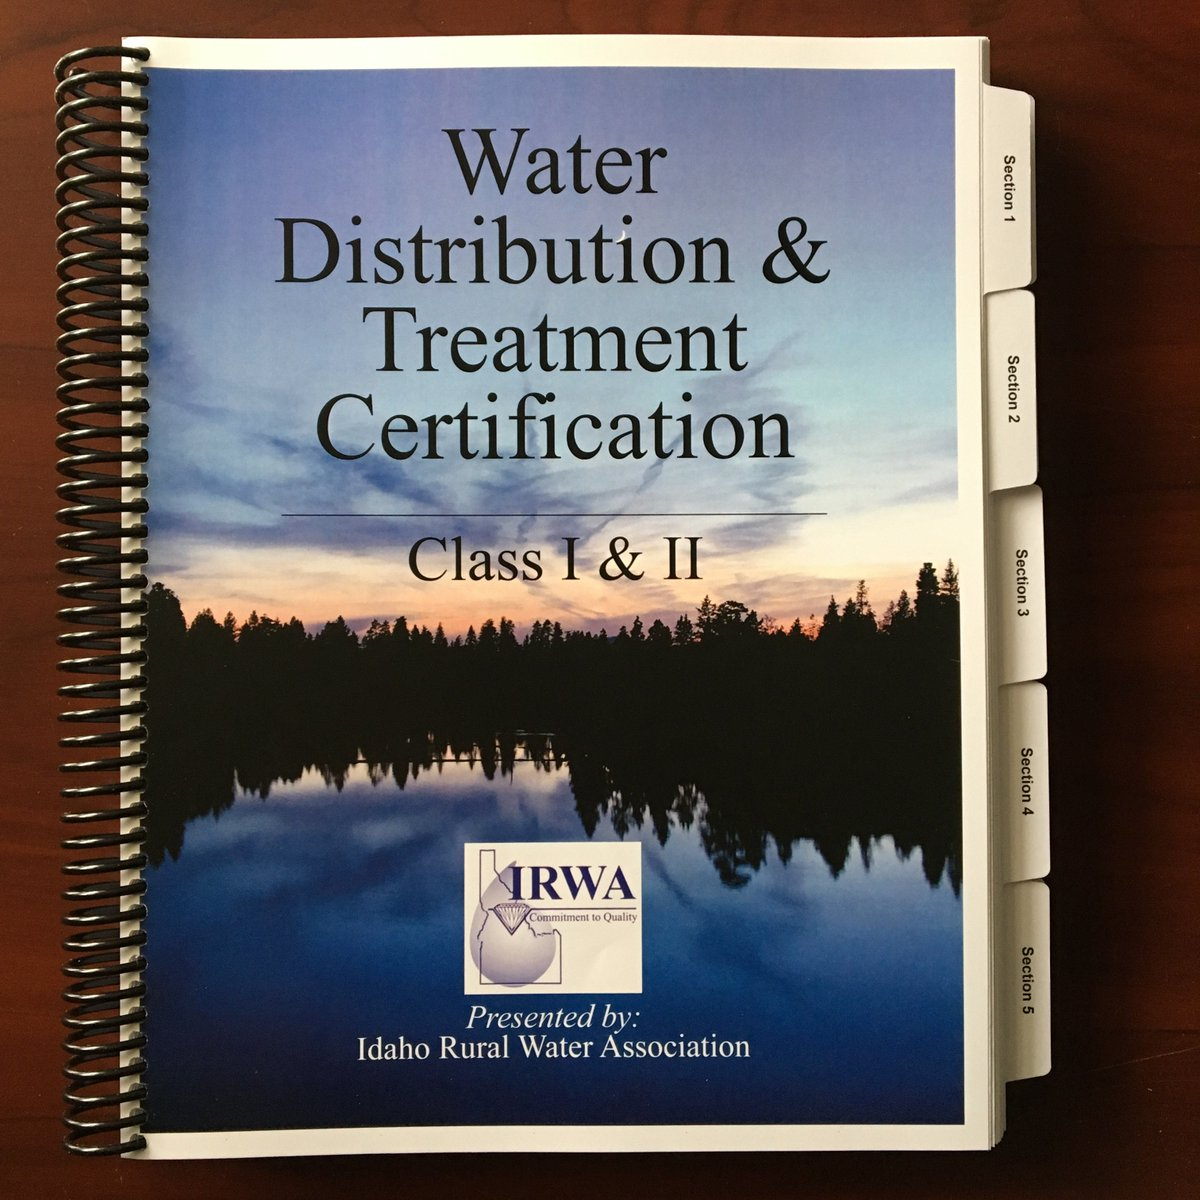 Idaho rural water idahoruralwater twitter copies of the book are for sale for 40 available through irwa to purchase a copy of this review book please contact the irwa office at xflitez Choice Image